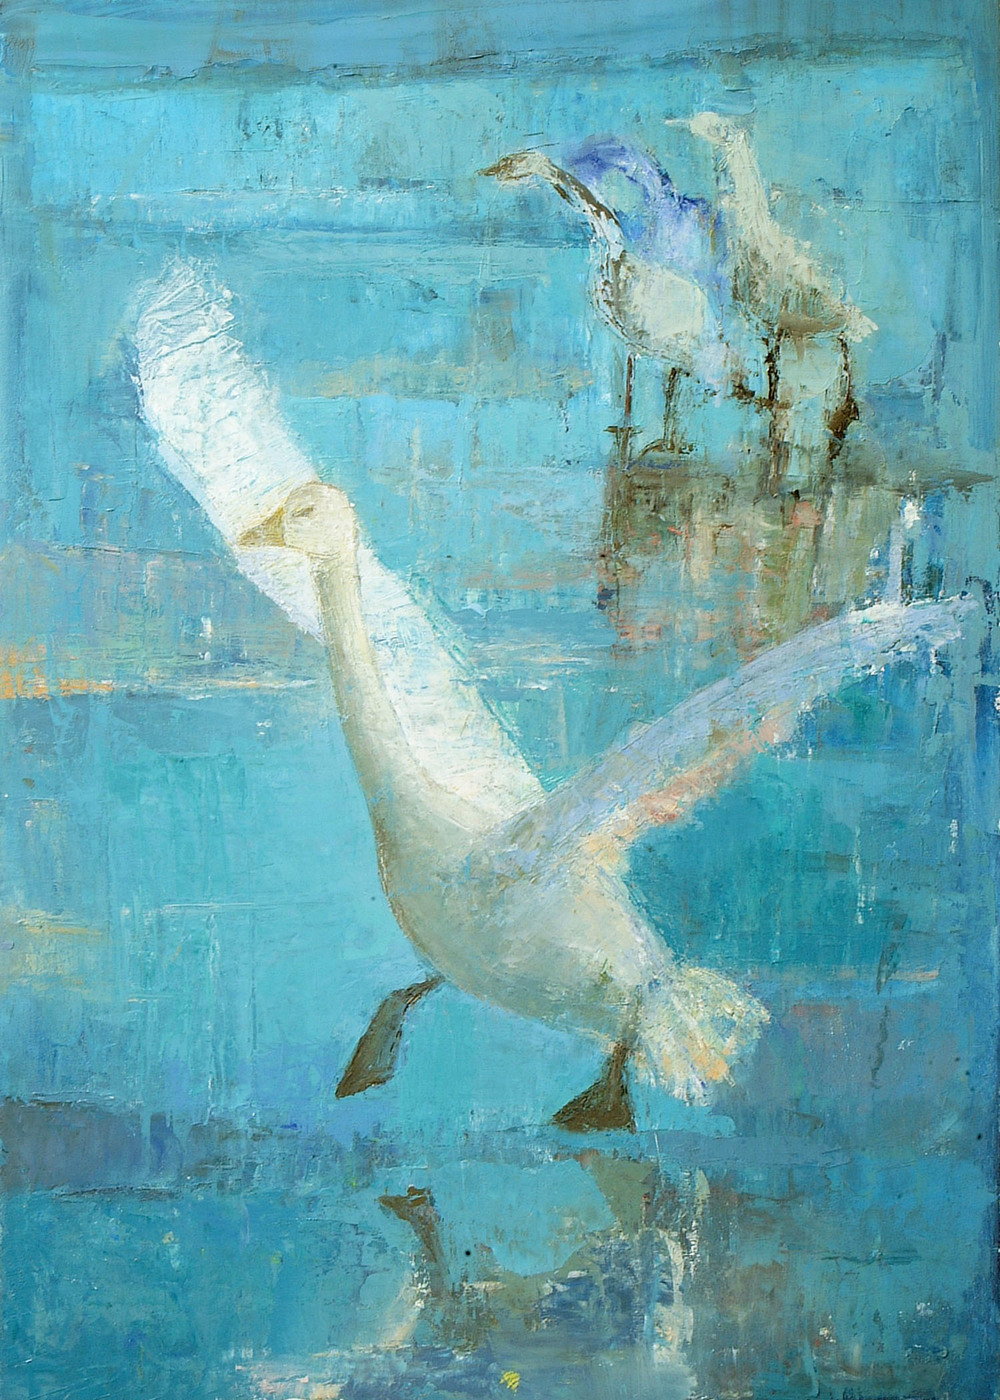 Anne Donnelly_-_Swan about to Fly_oil on canvas_70 x 50cm.jpg